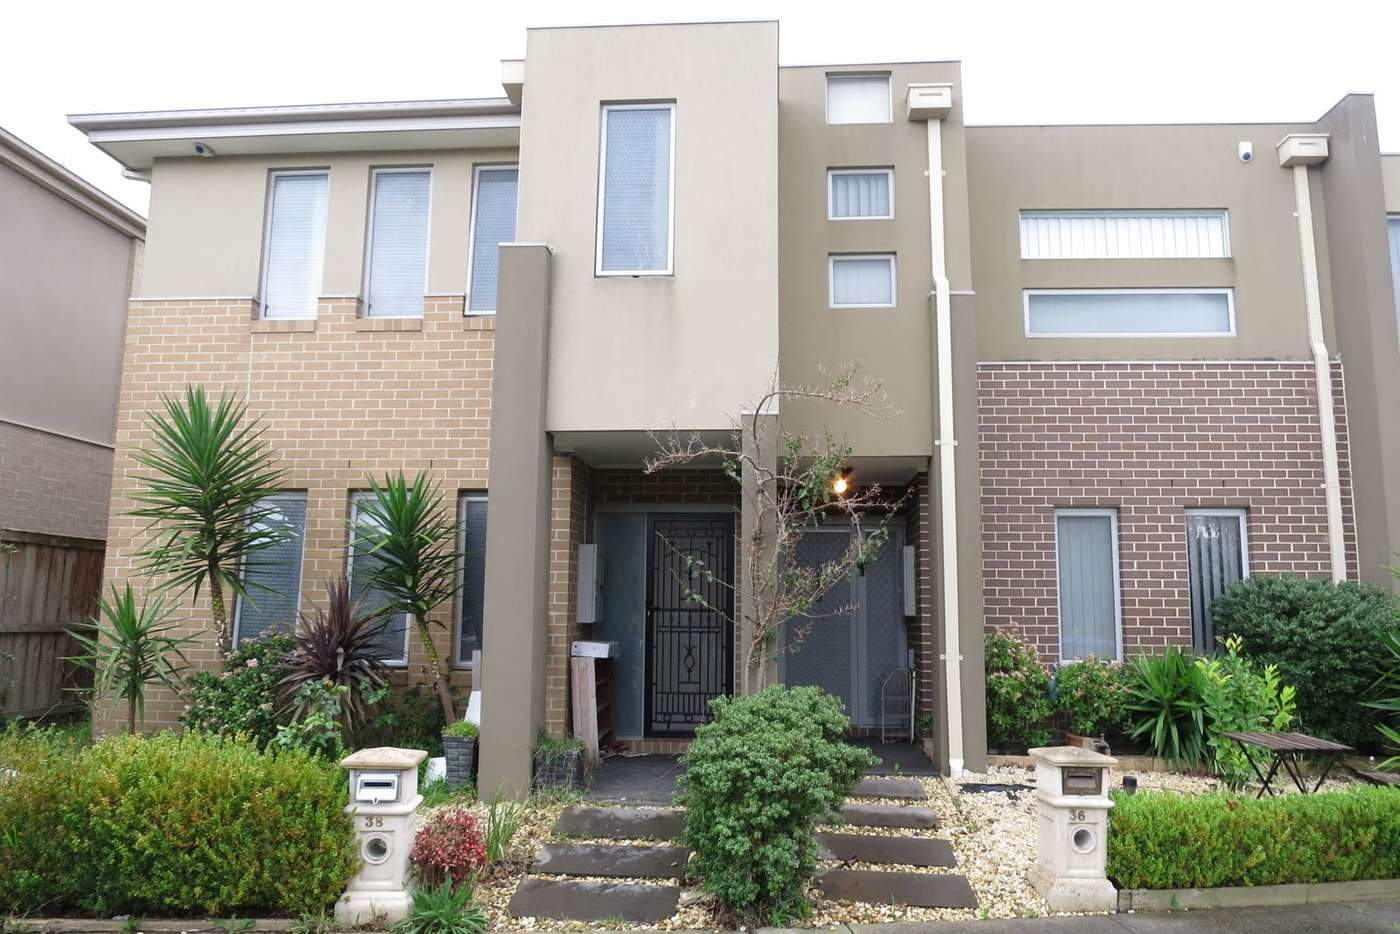 Main view of Homely townhouse listing, 38 Everitt Street, Dandenong VIC 3175